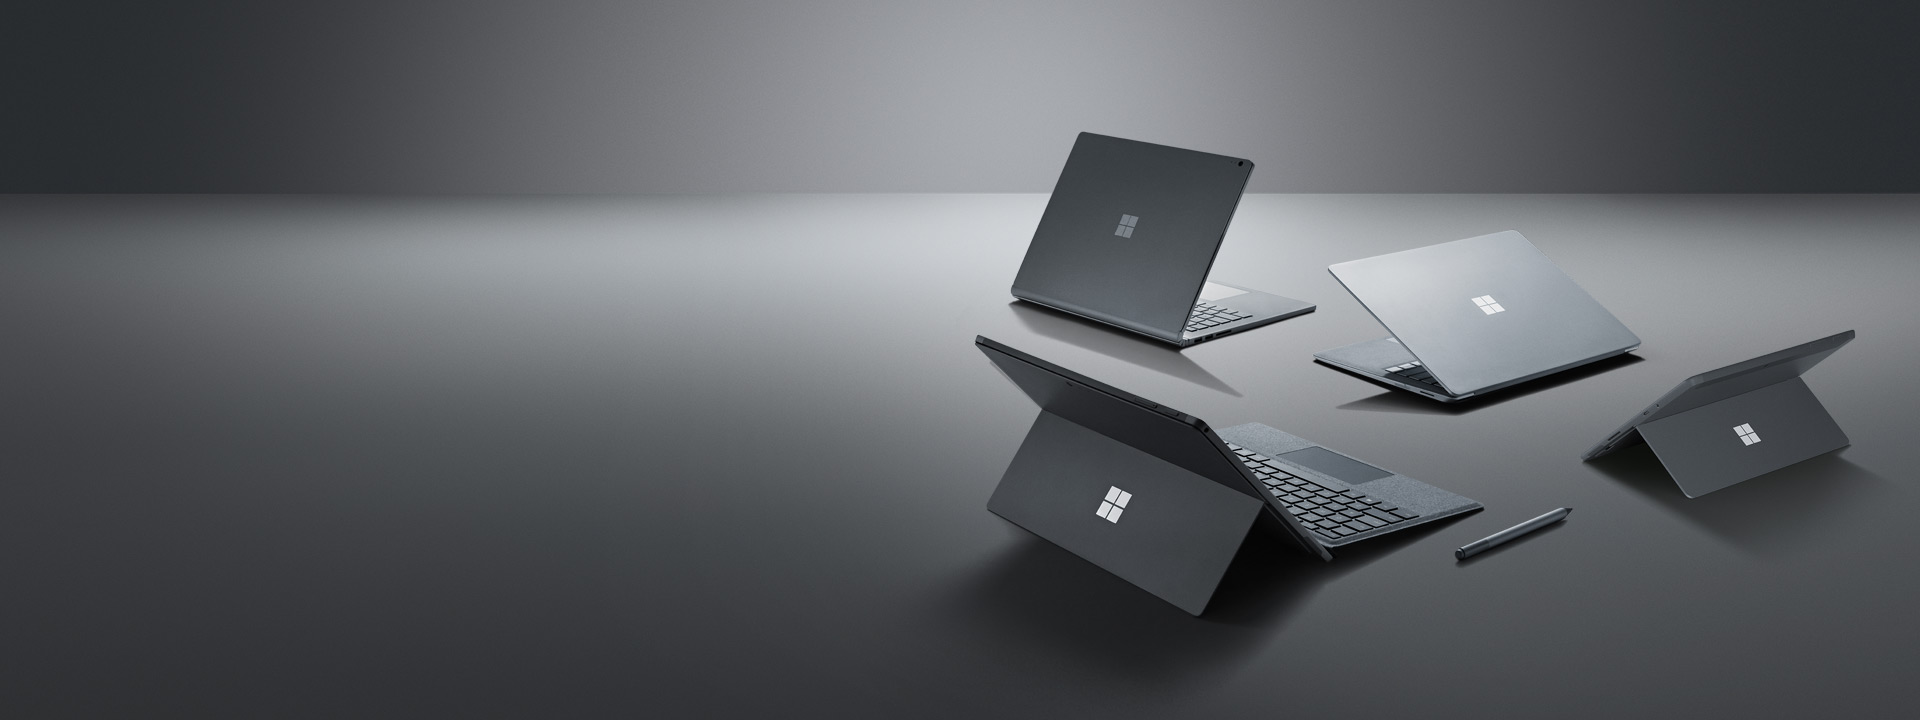 Surface Laptop 2, Surface Pro 6, Surface Go